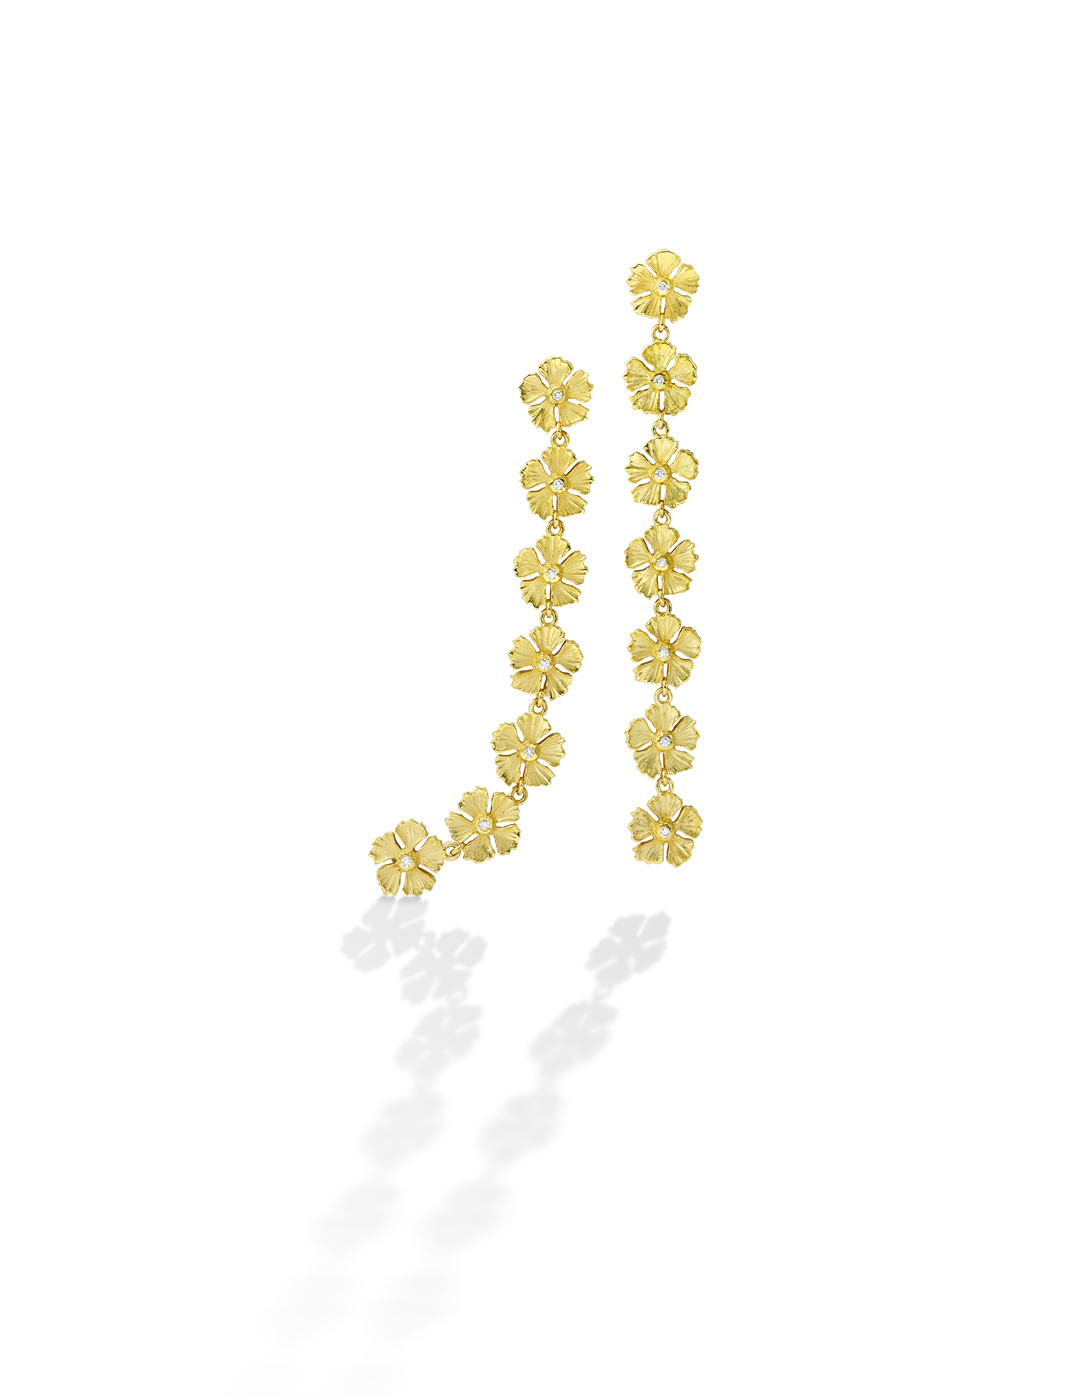 mish_products_earrings_StrawFlwr-Small-Lei-ER-1